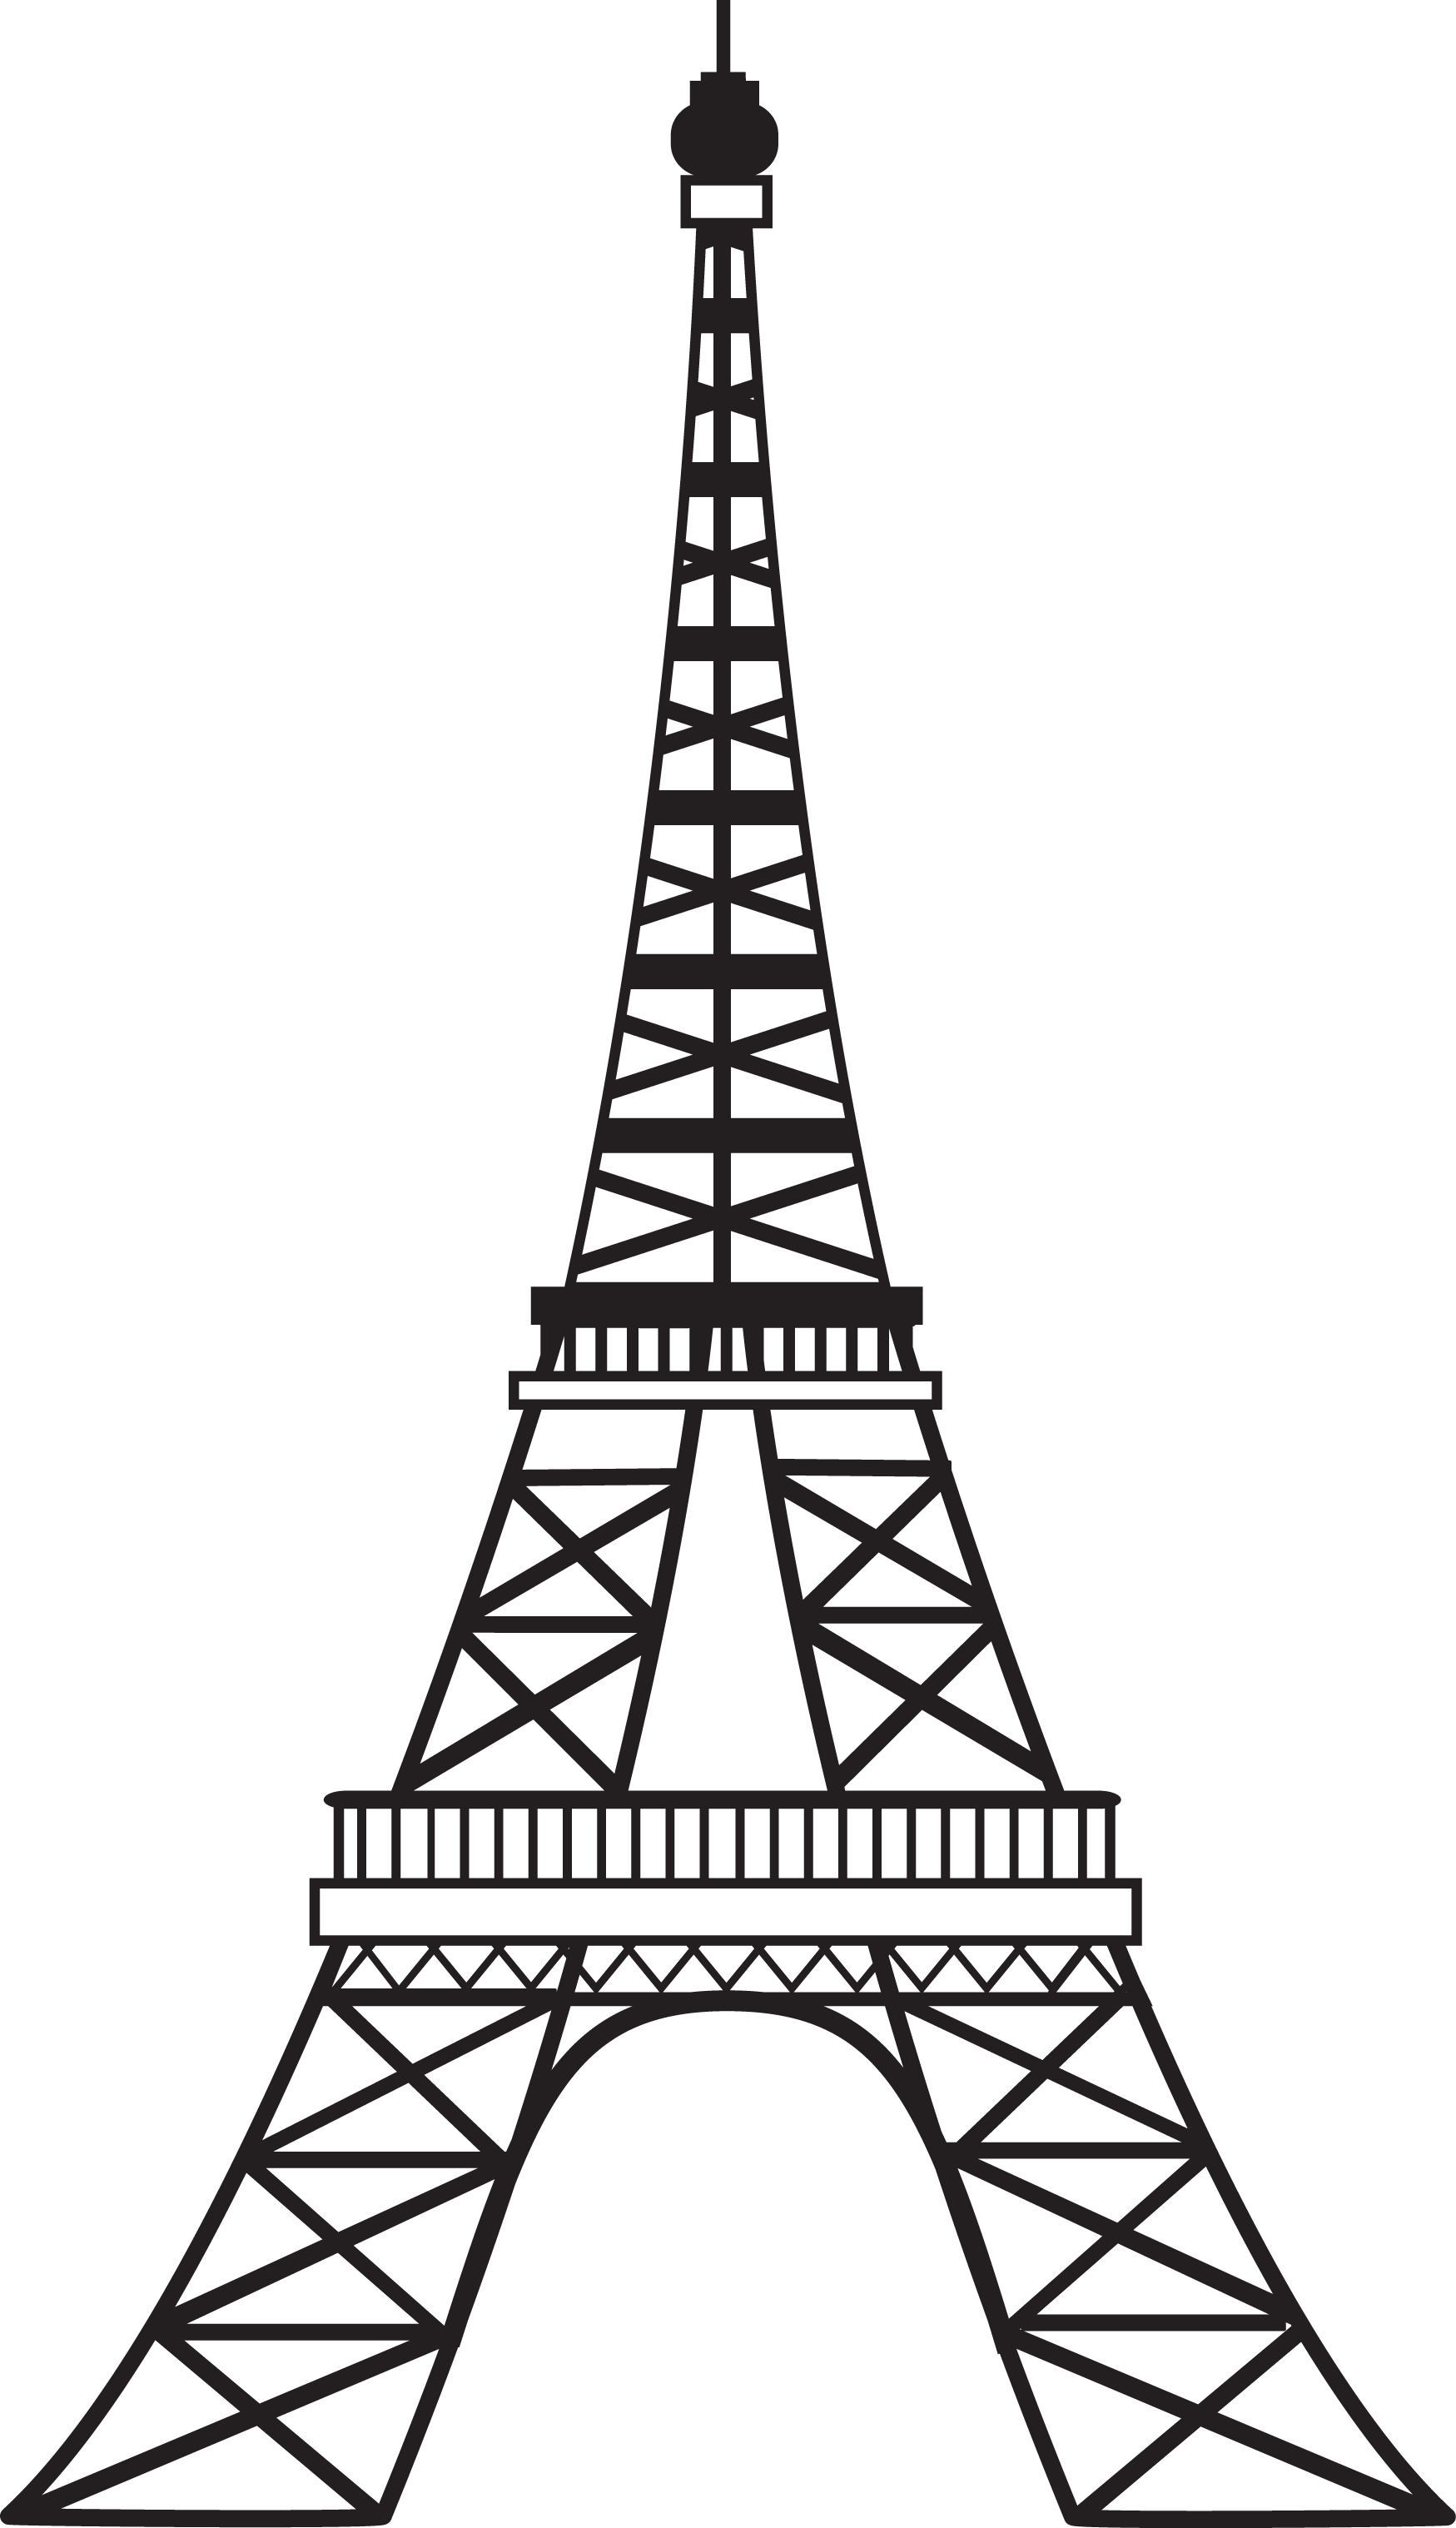 Eiffel Tower clipart #15